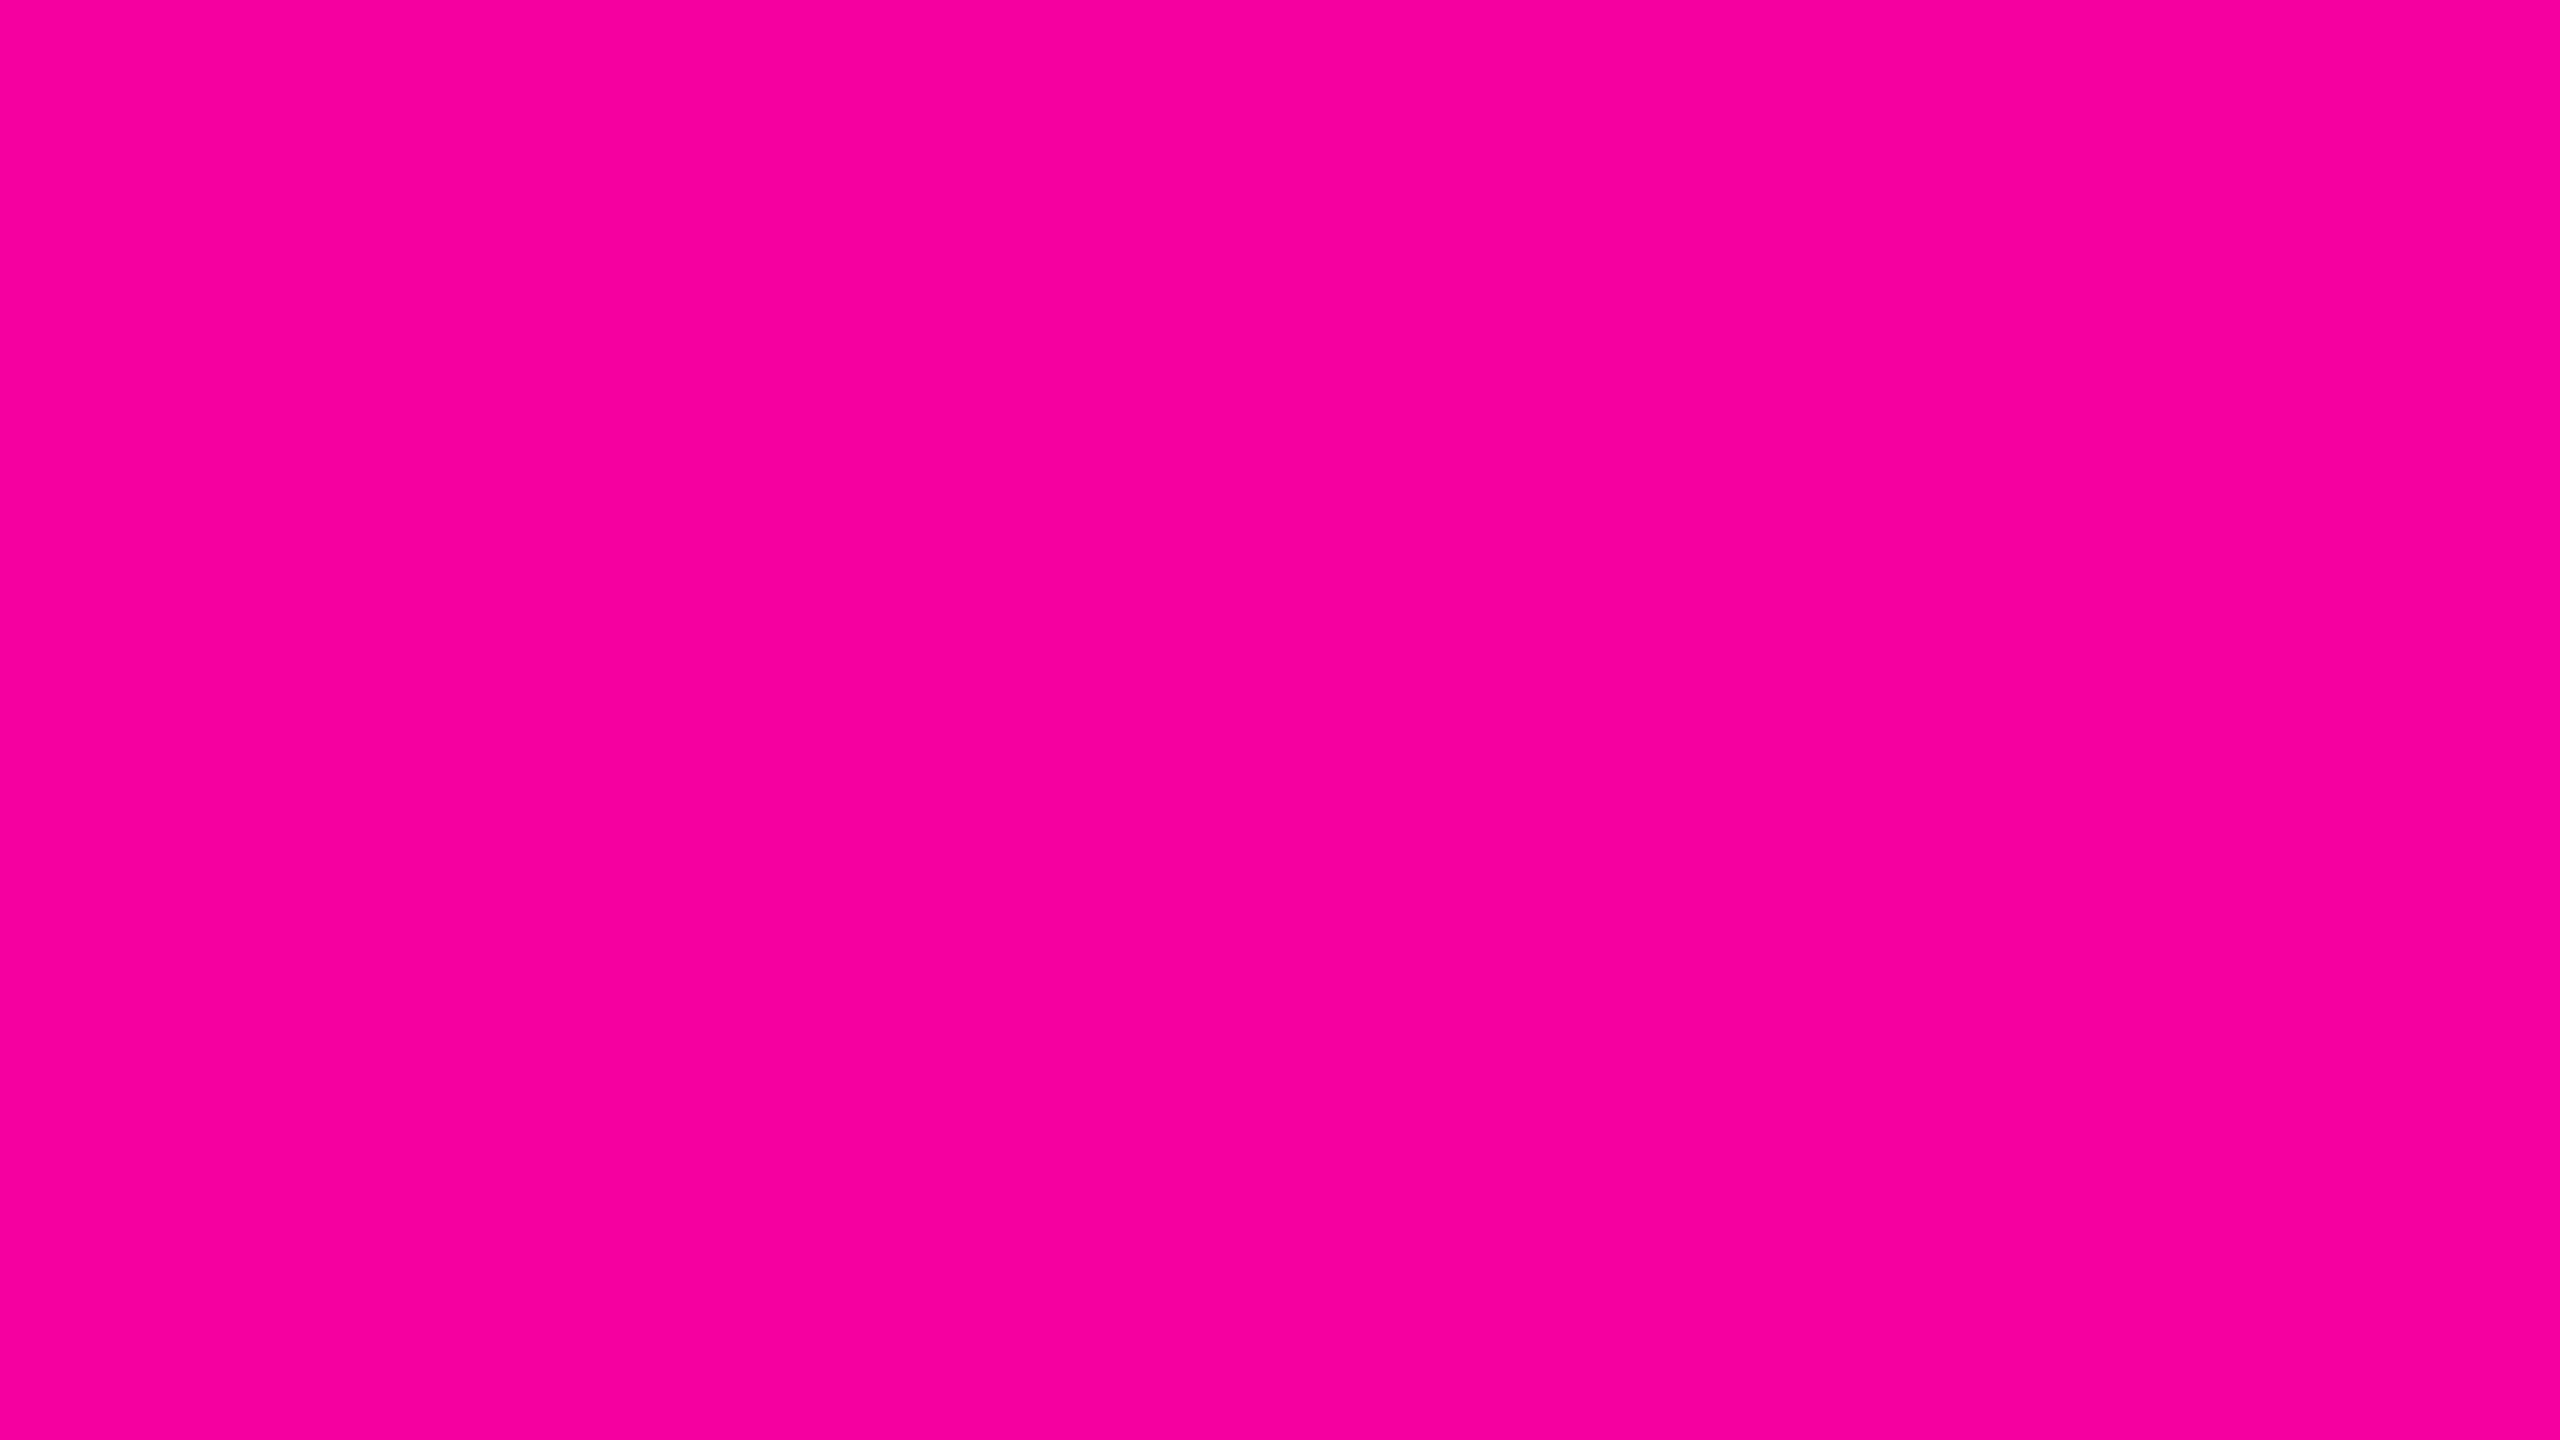 2560x1440 Fashion Fuchsia Solid Color Background